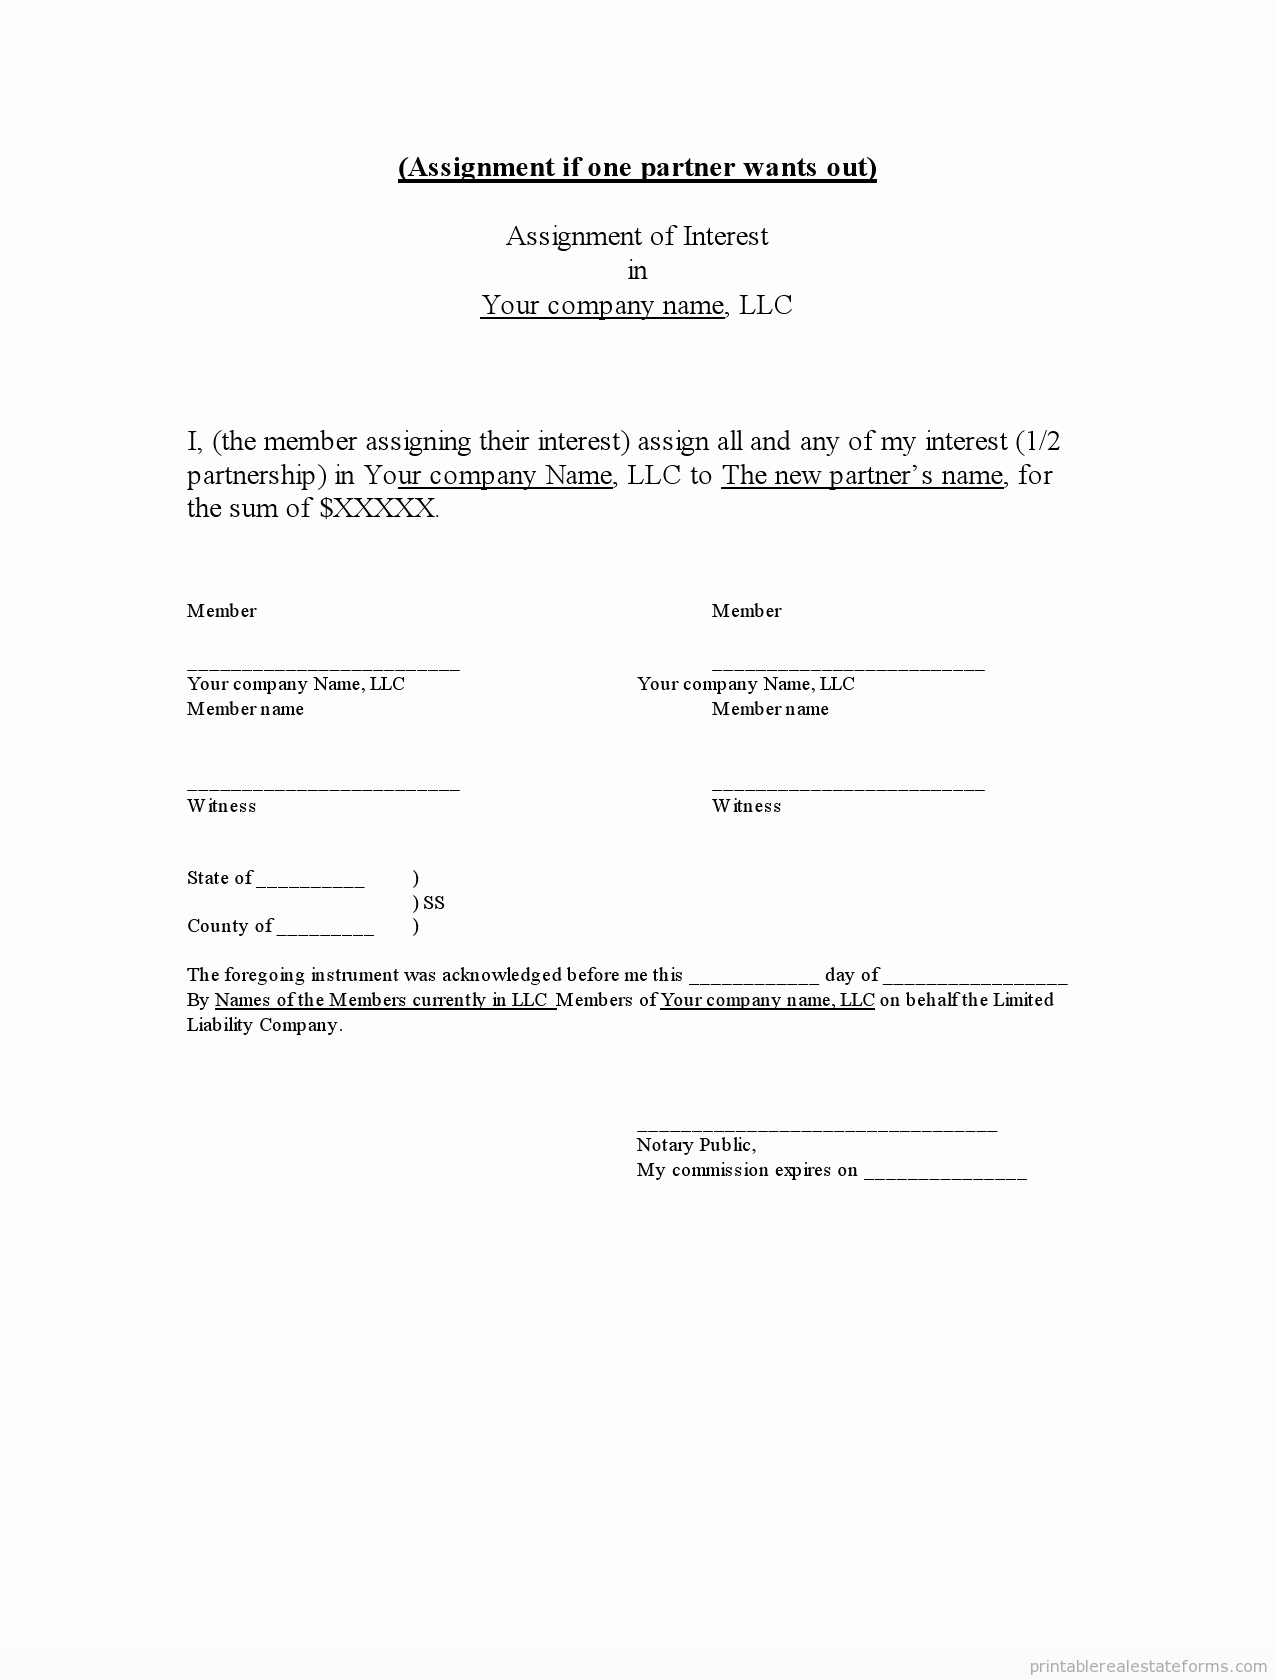 Llc Membership Certificate Template New Sample Printable assignment Of Llc Interest form